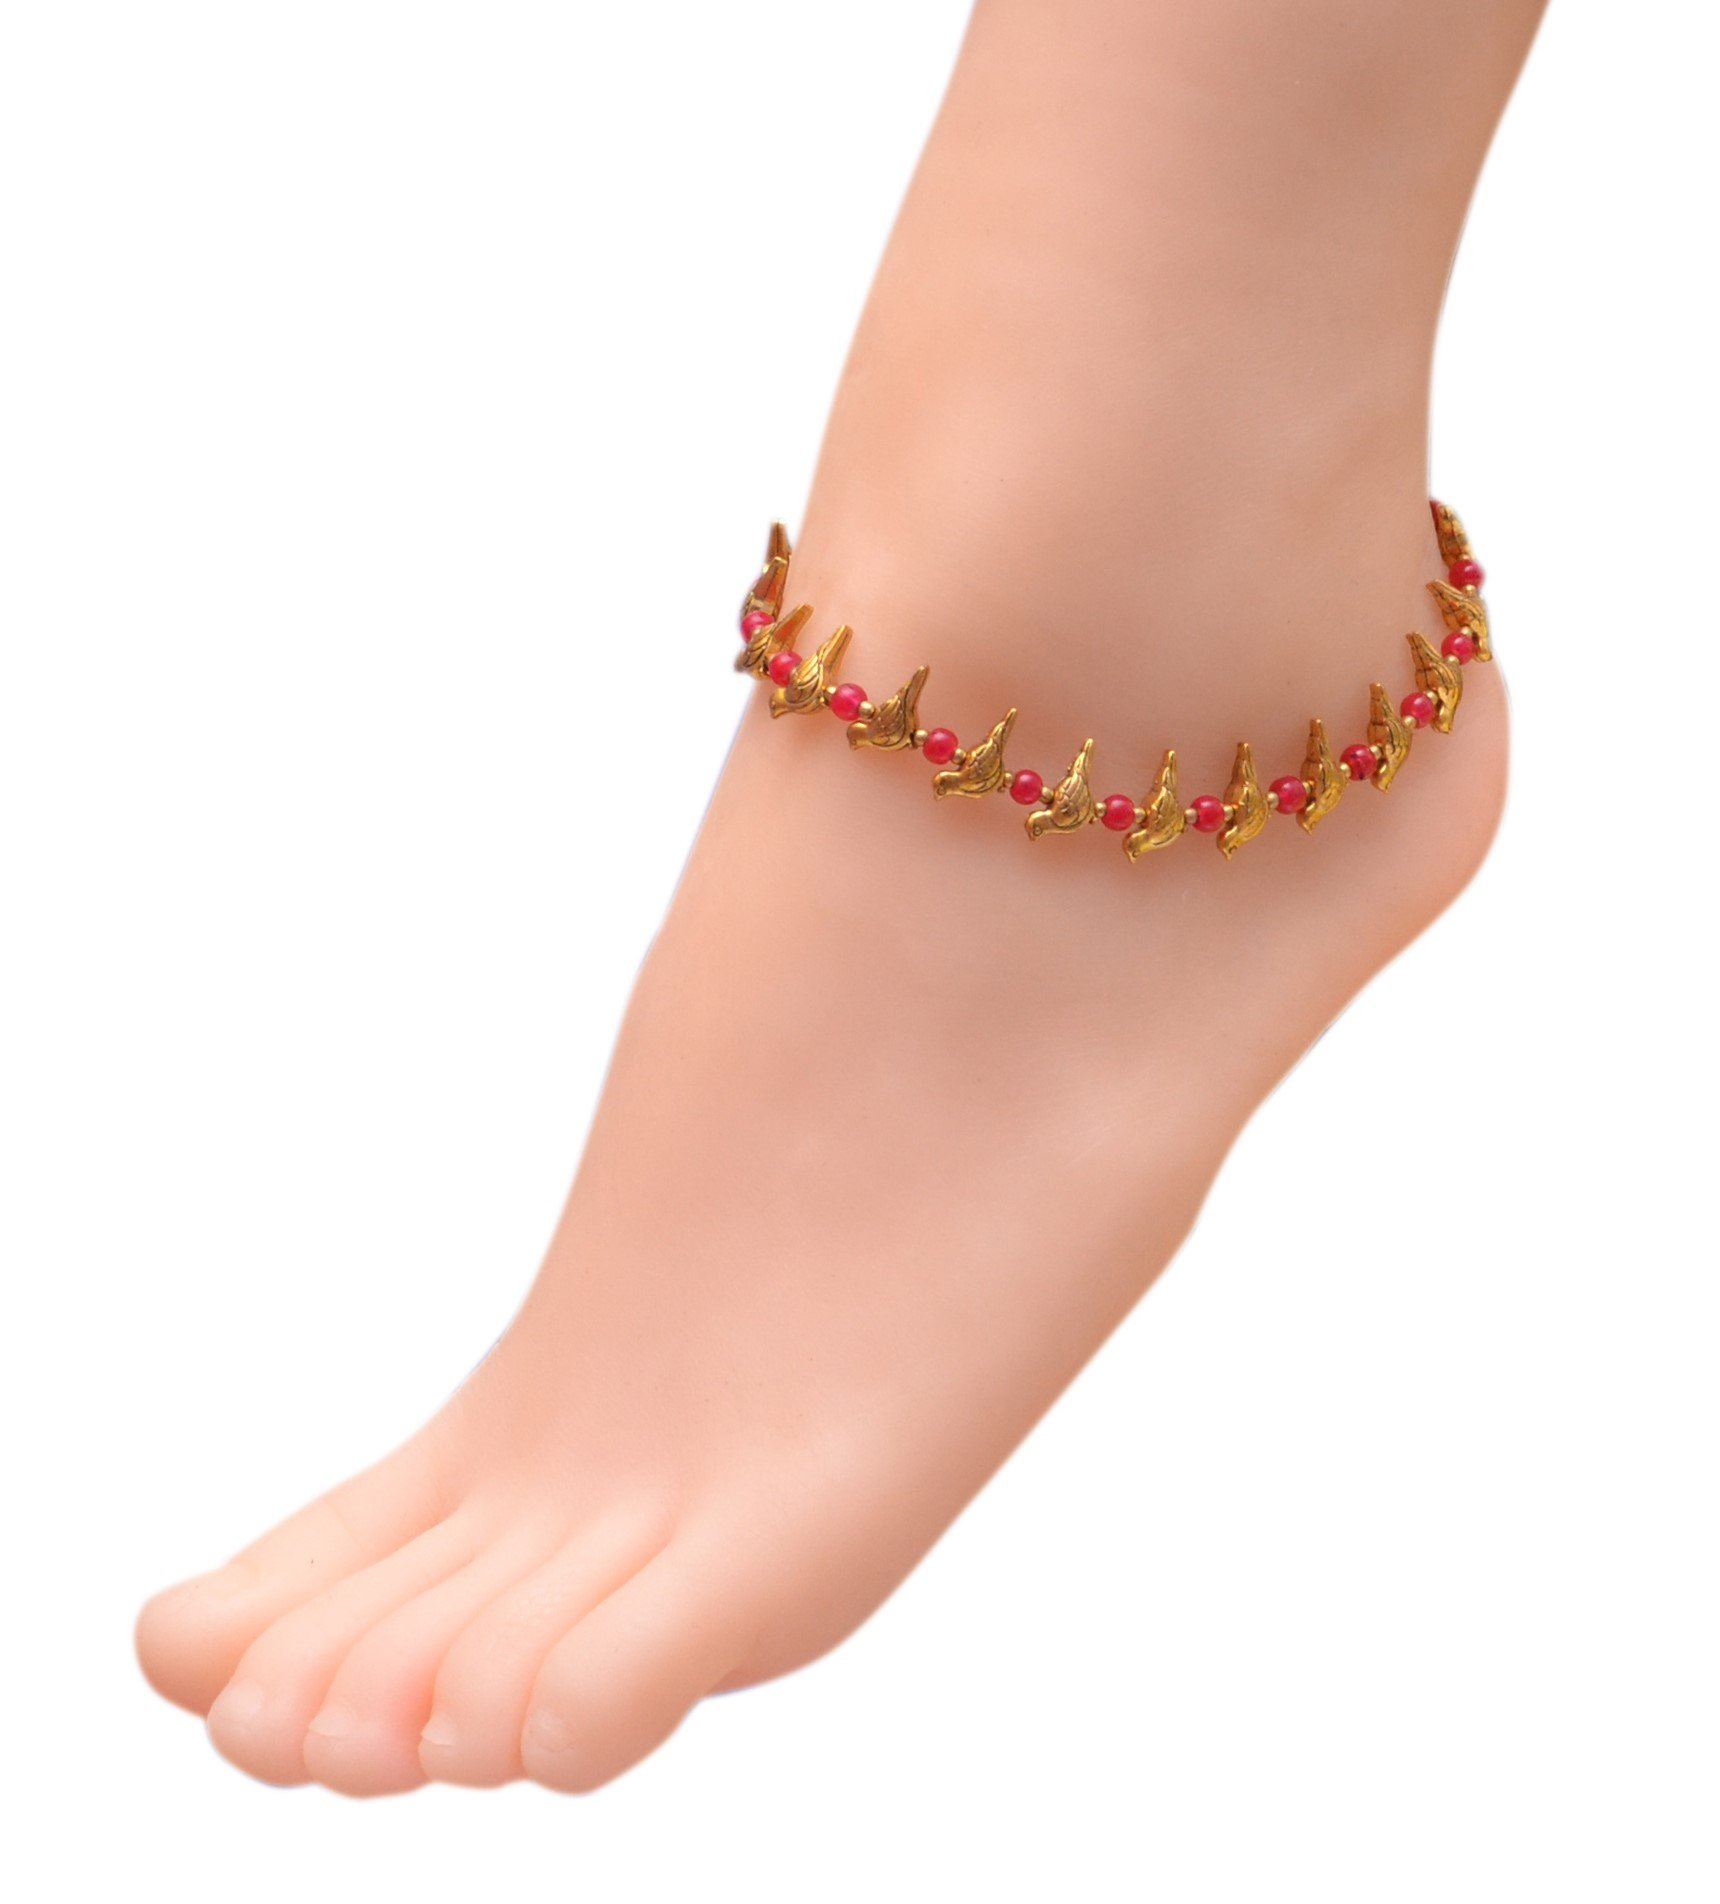 Sansar India Oxidized Bird Beads Indian Anklet Jewelry for Girls and Women